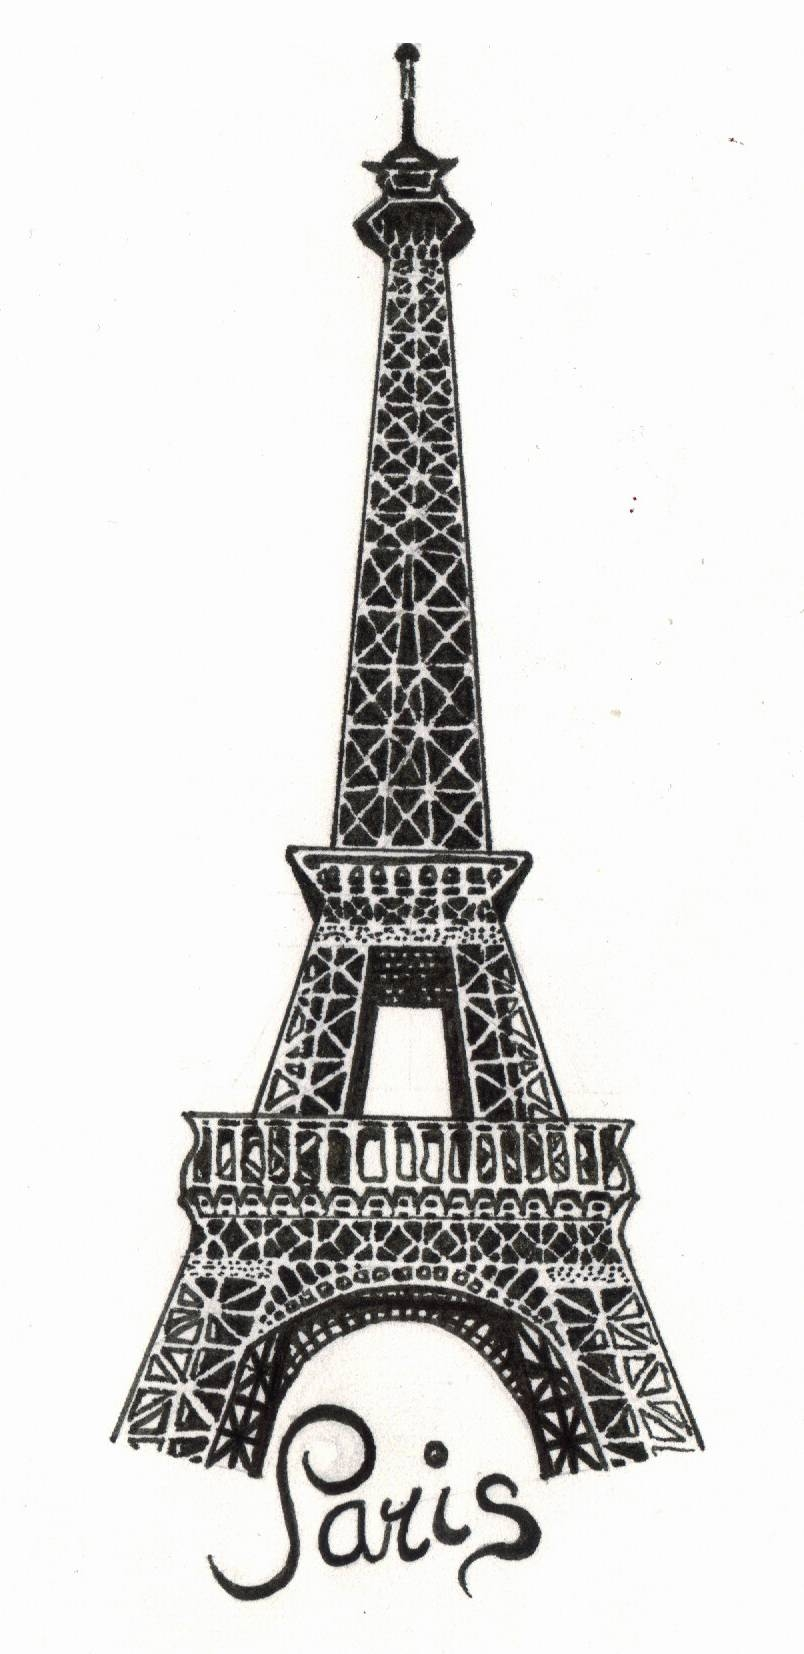 Paris – The Eiffel Towerthe Snow White On Deviantart Intended For Most Current Metal Eiffel Tower Wall Art (View 7 of 30)